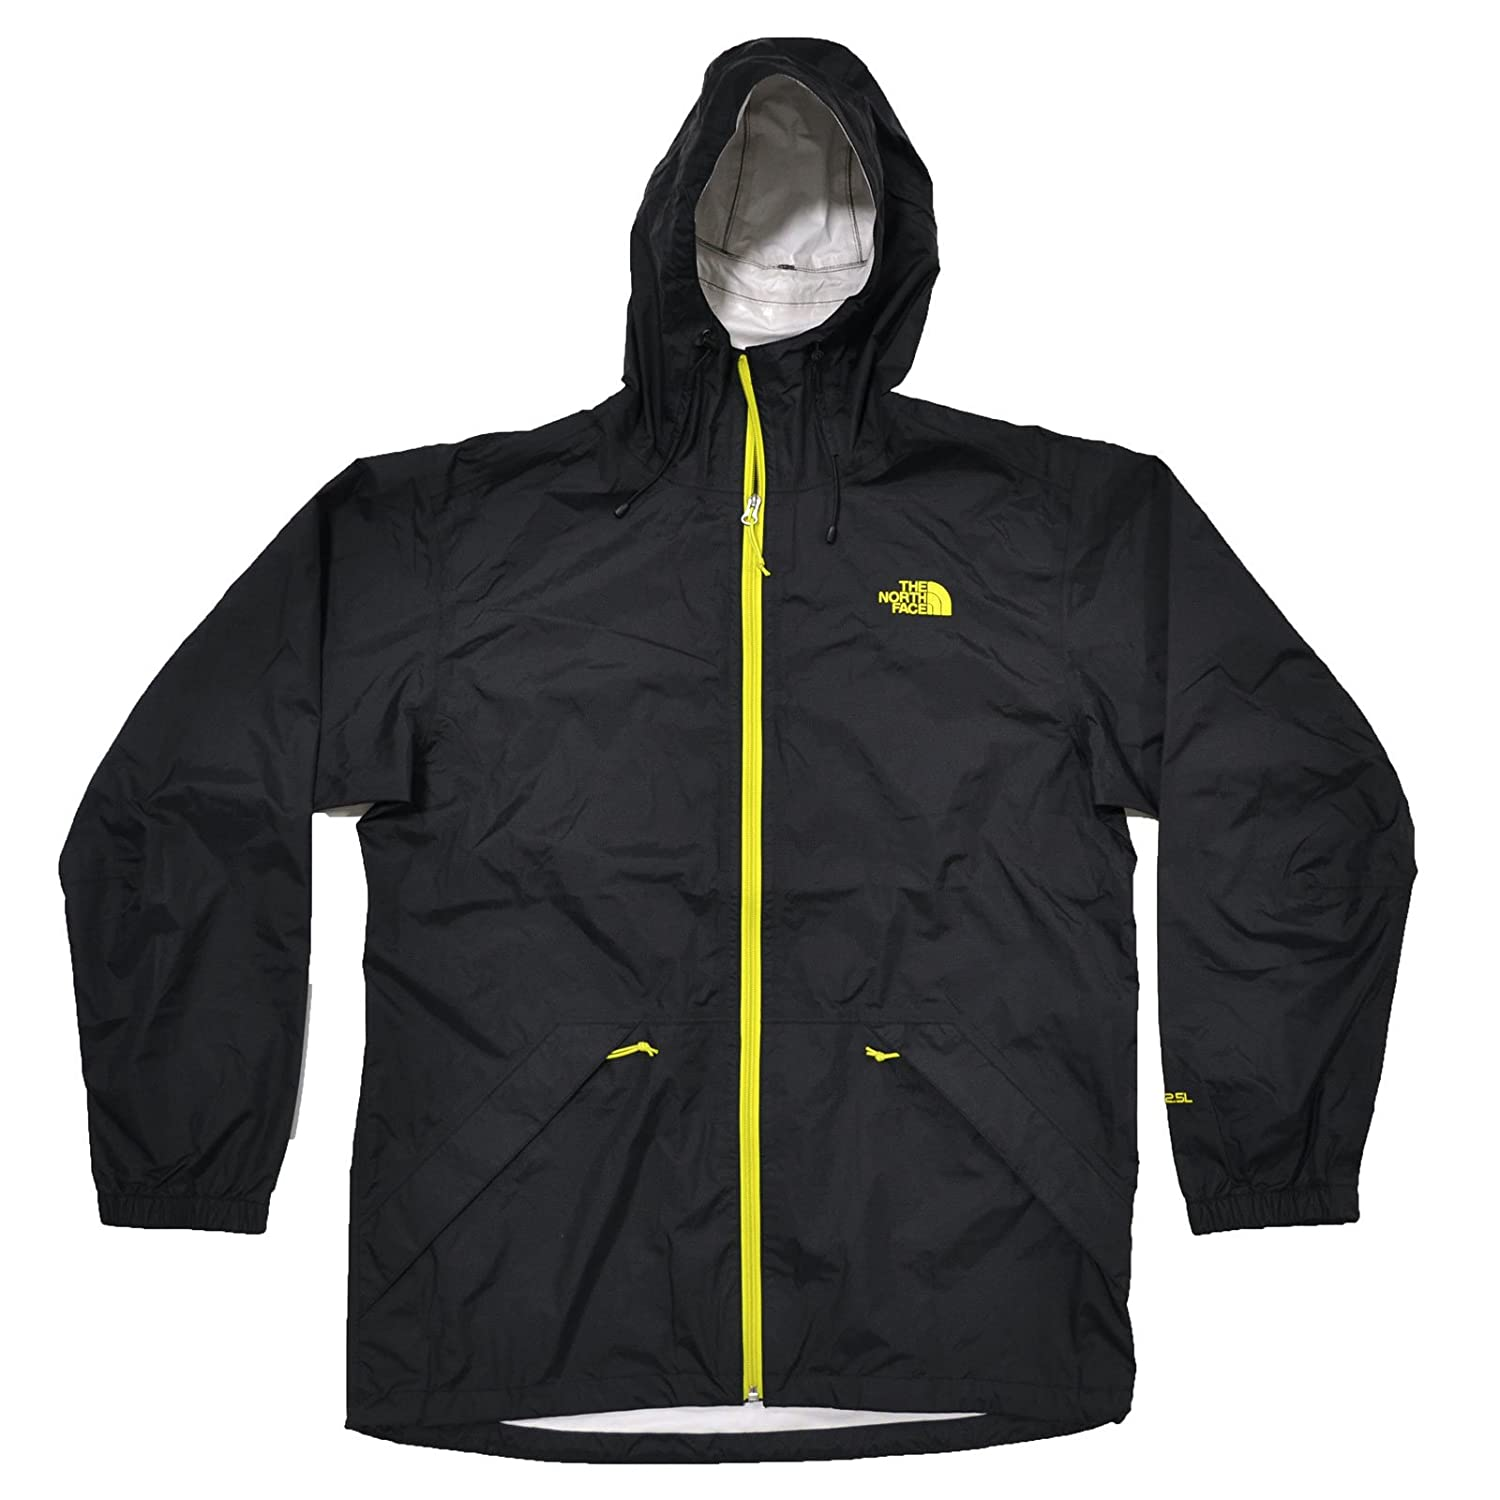 dbff78ef5 where can i buy north face rain jacket bakossi 6ad87 632a0